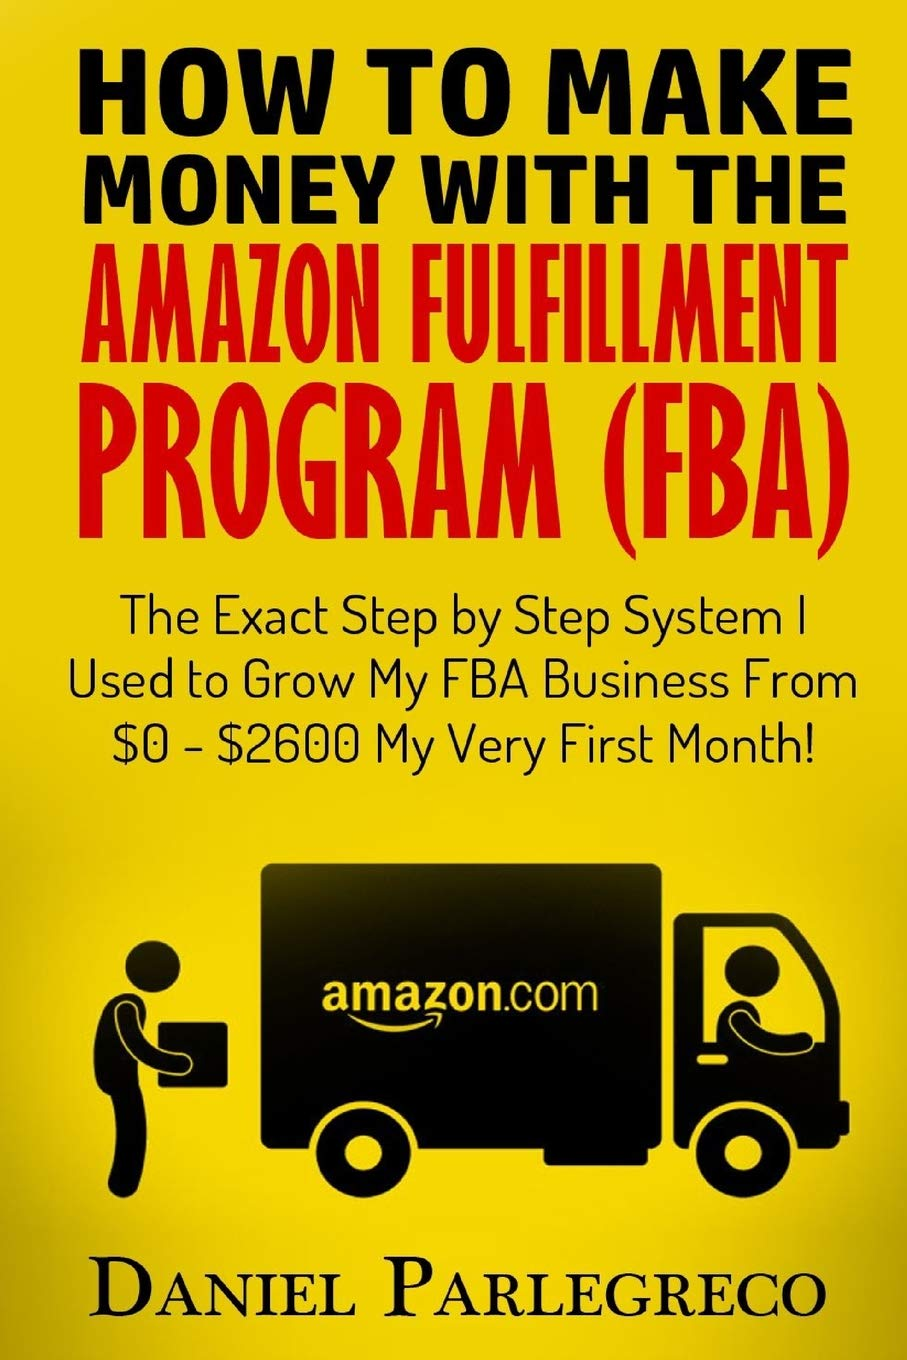 amazon's fba program